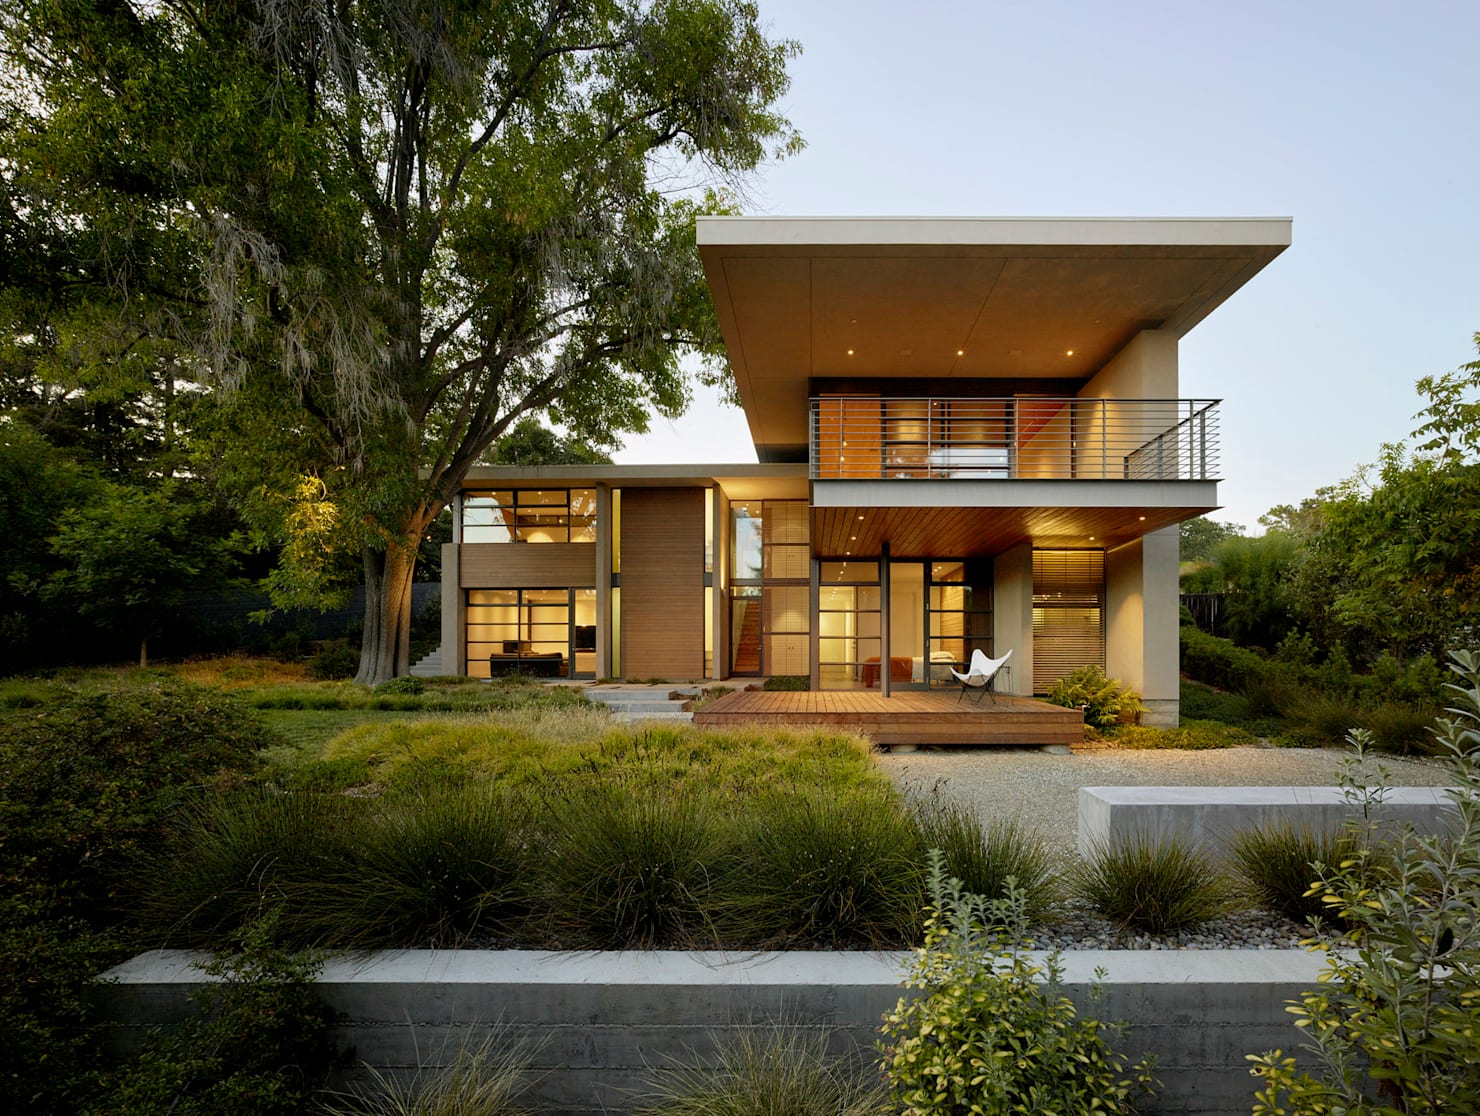 This gorgeous home strikes a natural balance